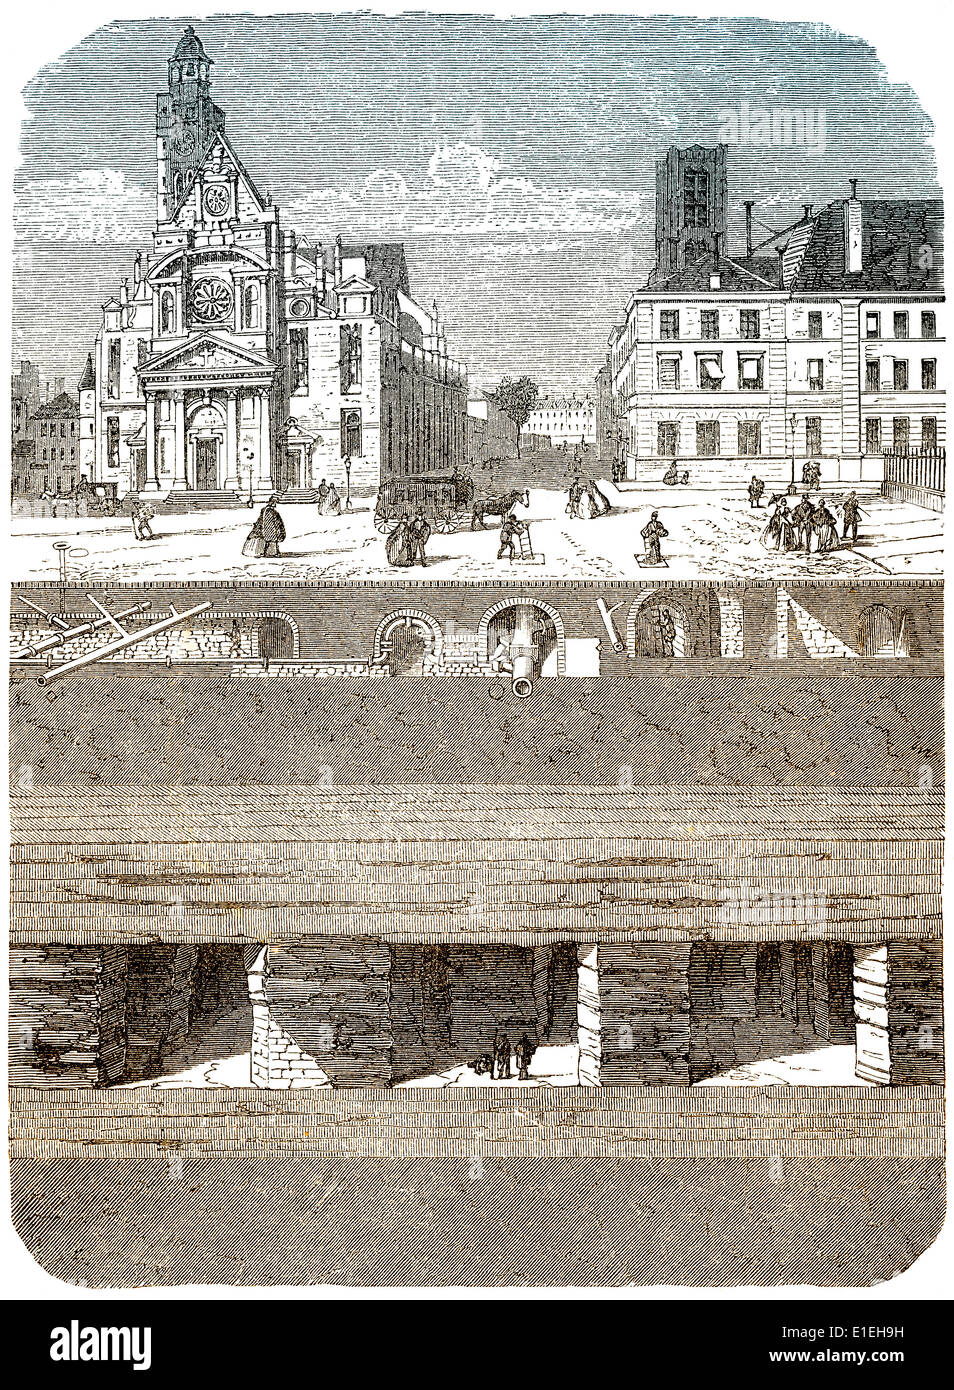 The underground of Paris, France, 19th century - Stock Image